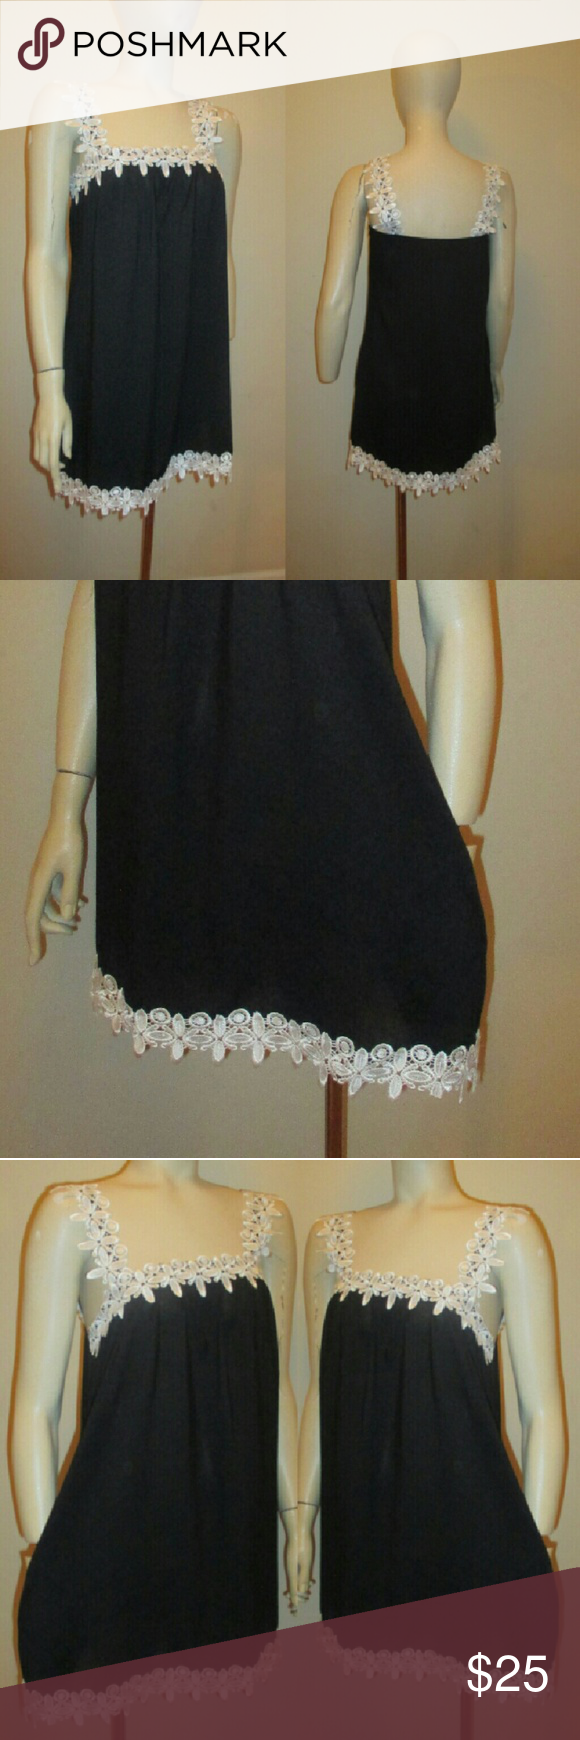 "Fancy Black and White Dress This is a stylish black dress trimmed with scallop trim.? This dress comes with 2 front pockets.? Length from shoulder strap to length of dress is 32"" Dresses"